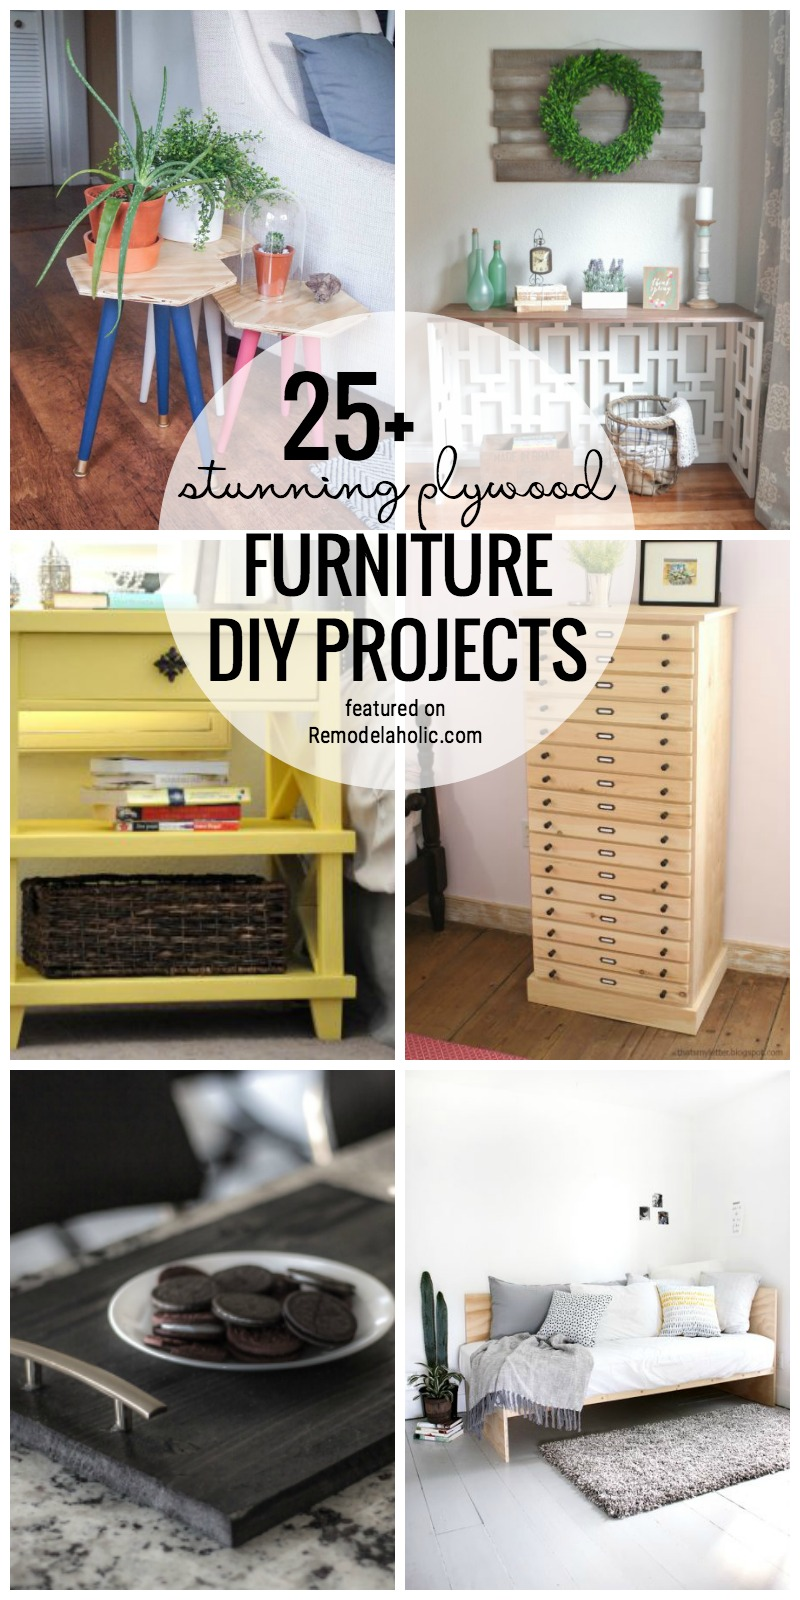 More Plywood Ideas: